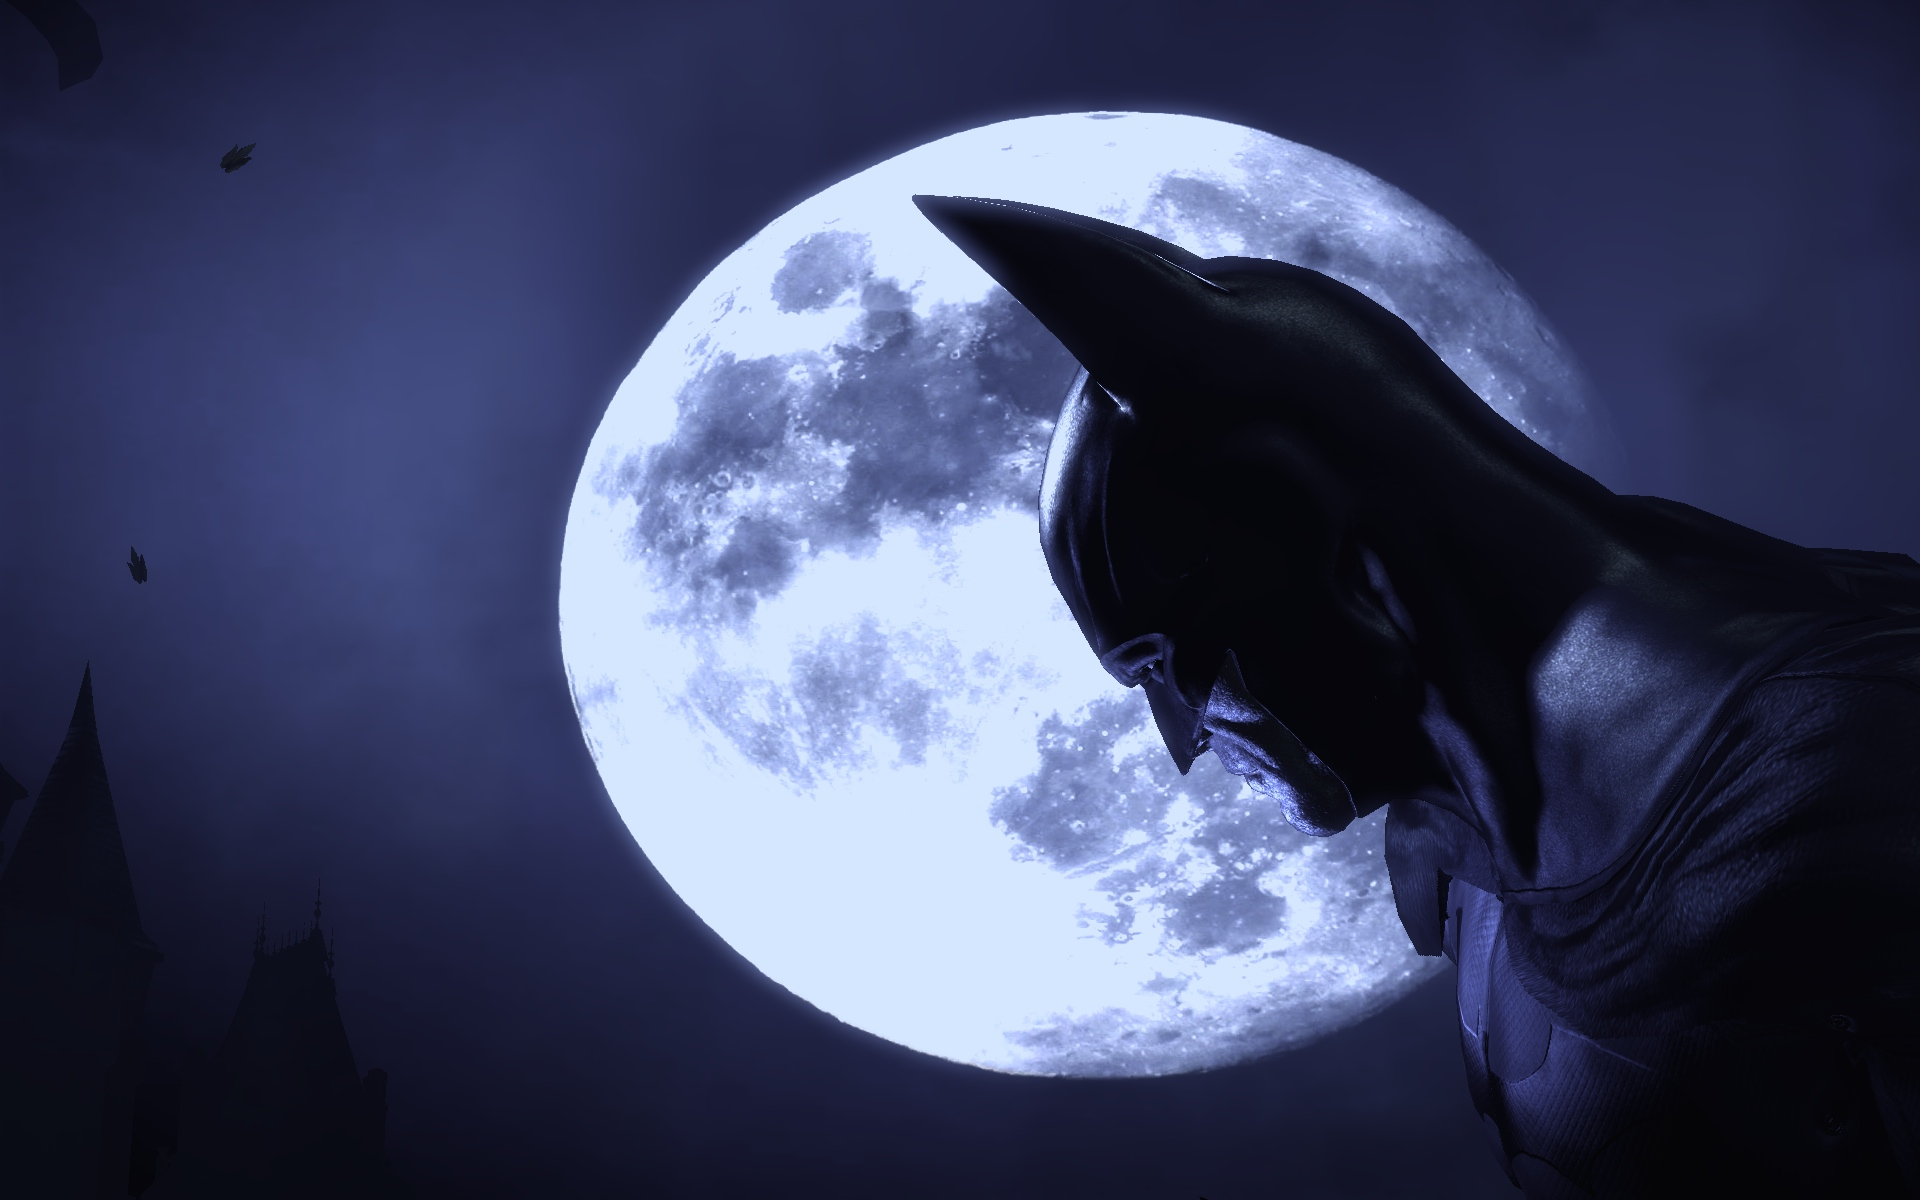 Batman Arkham Asylum desktop wallpaper 1920x1200